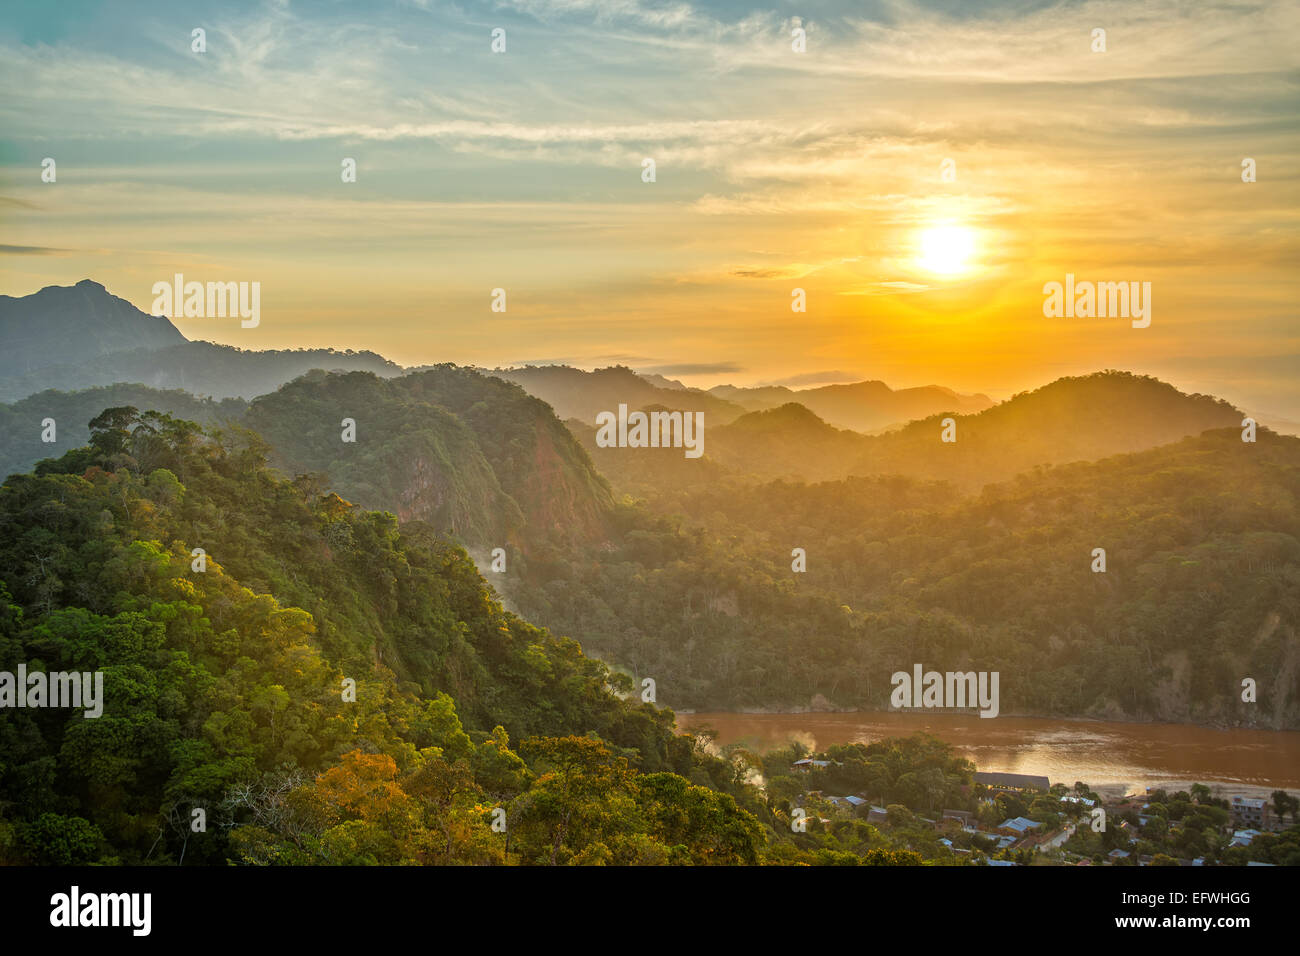 Sunset over lush green jungle covered hills with the Beni River visible in Rurrenabaque, Bolivia - Stock Image